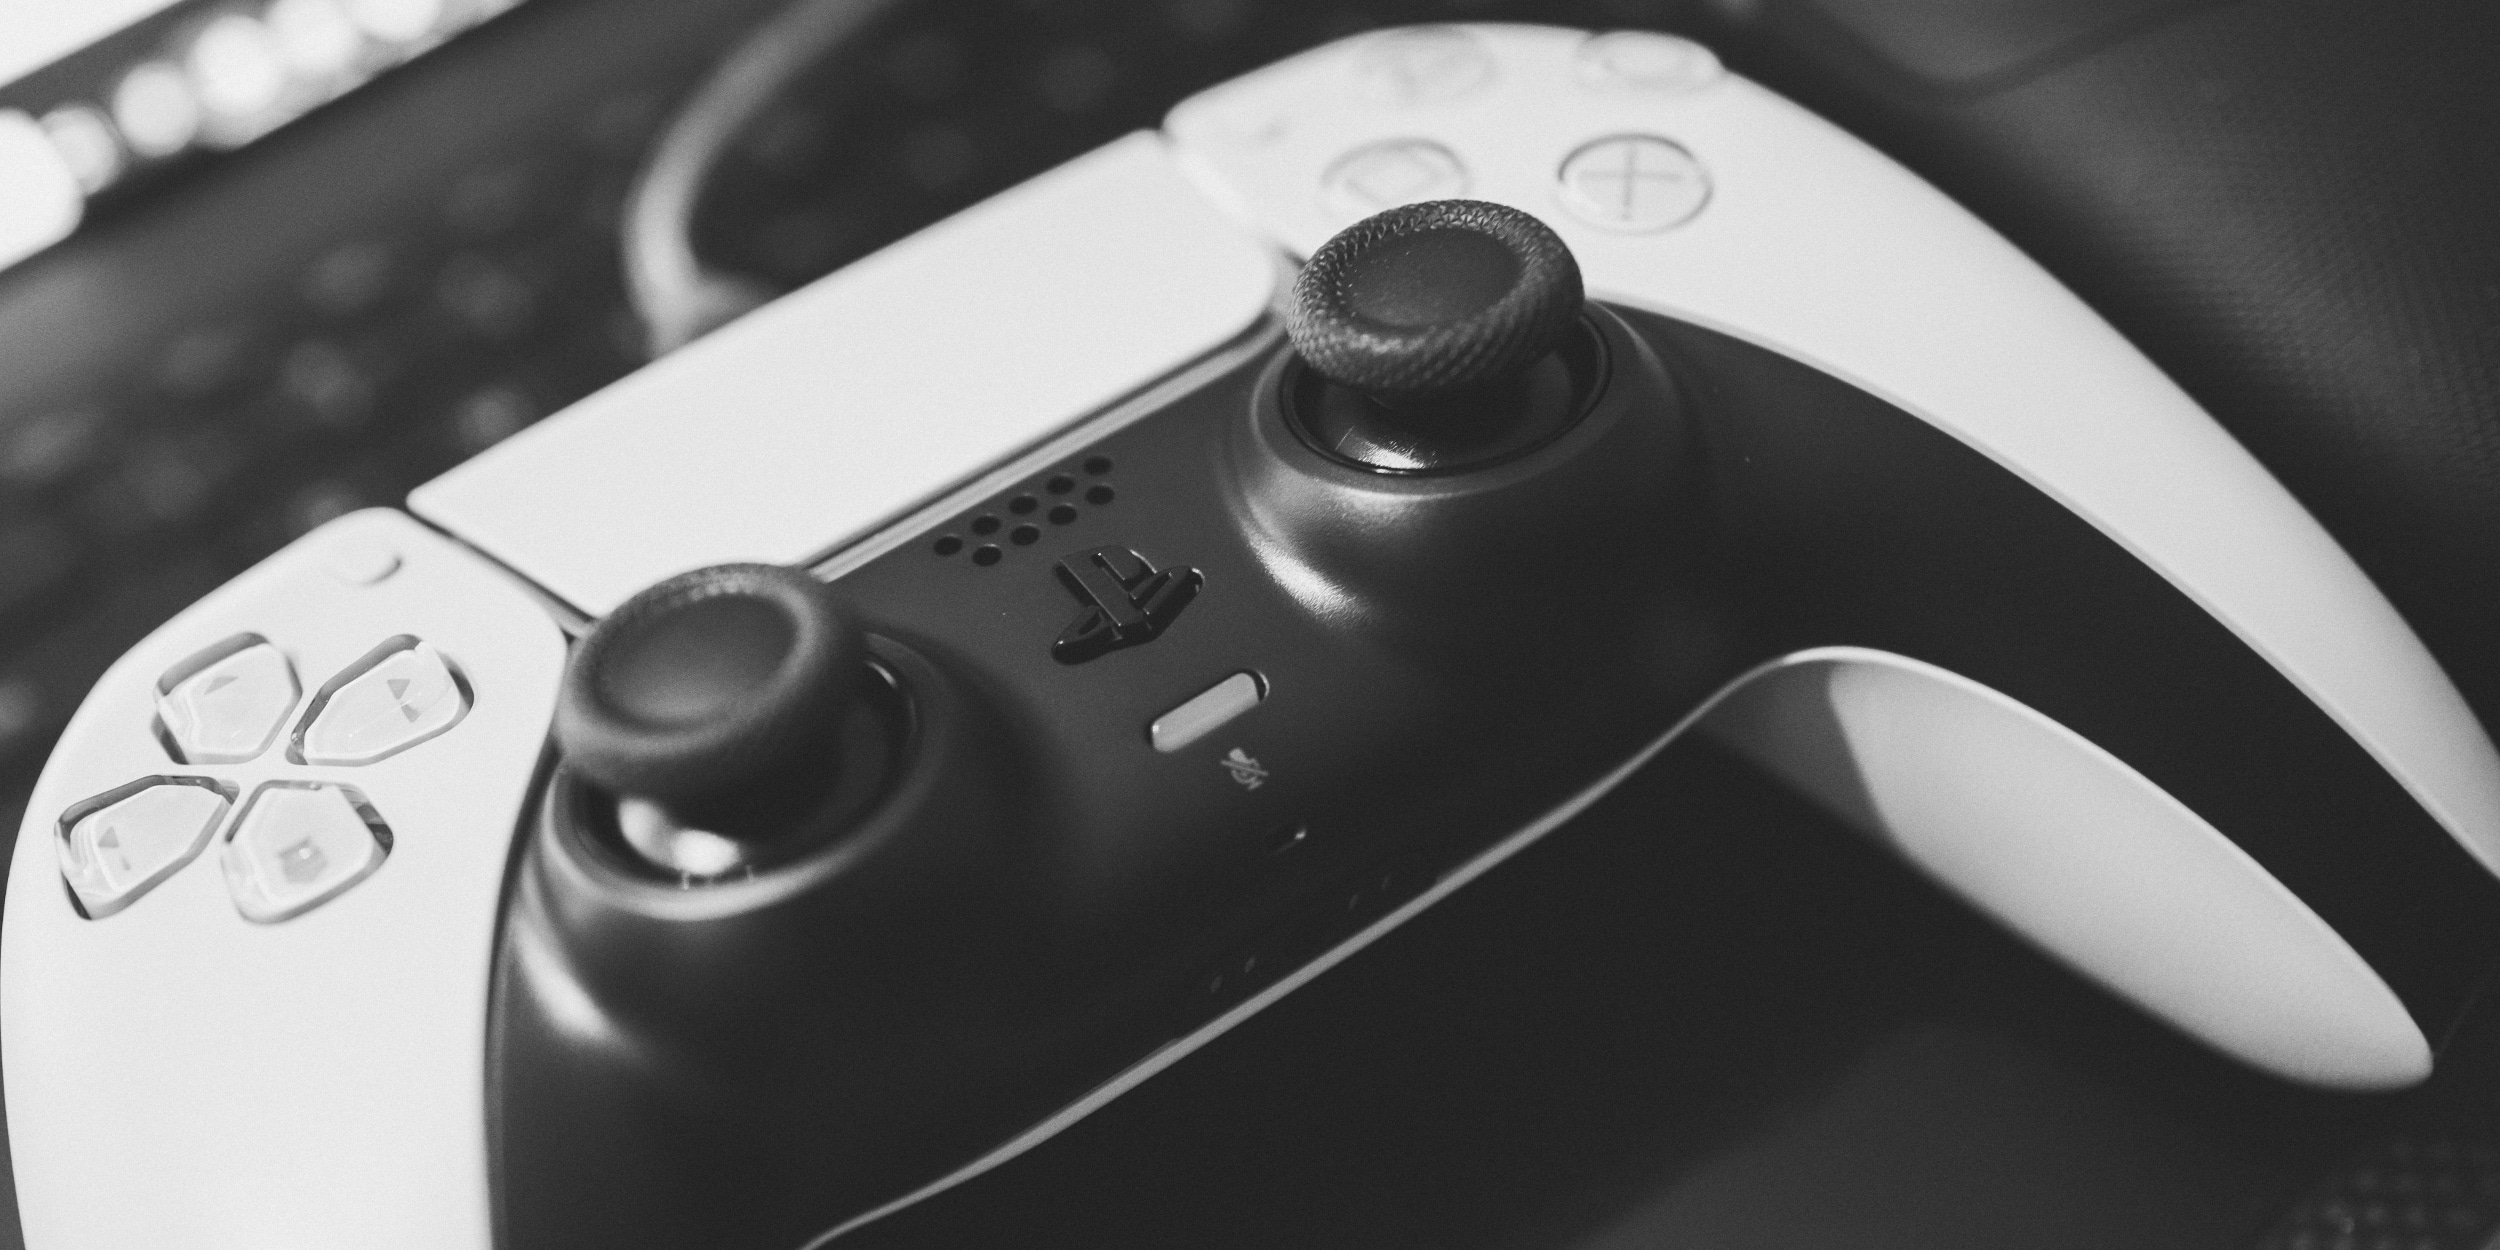 a closeup on a Playstation 5 controller